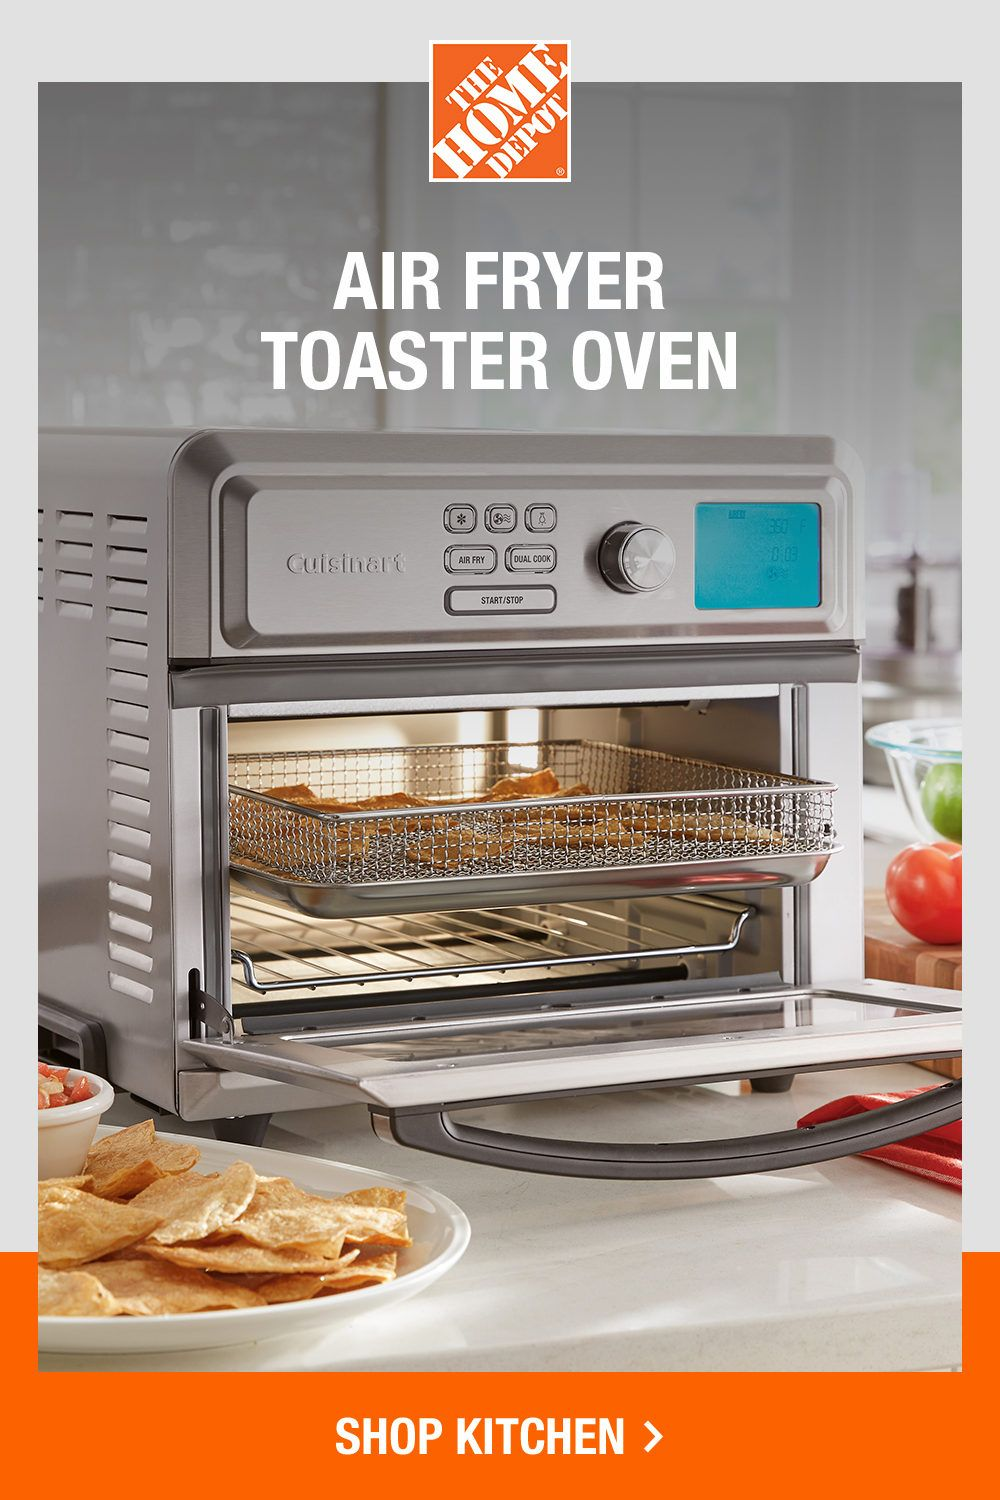 Make Mealtime Simple With The Latest In Kitchen Gadgets And Cooking Tools From The Home Depot In 2020 Countertop Appliances Countertops Meal Time